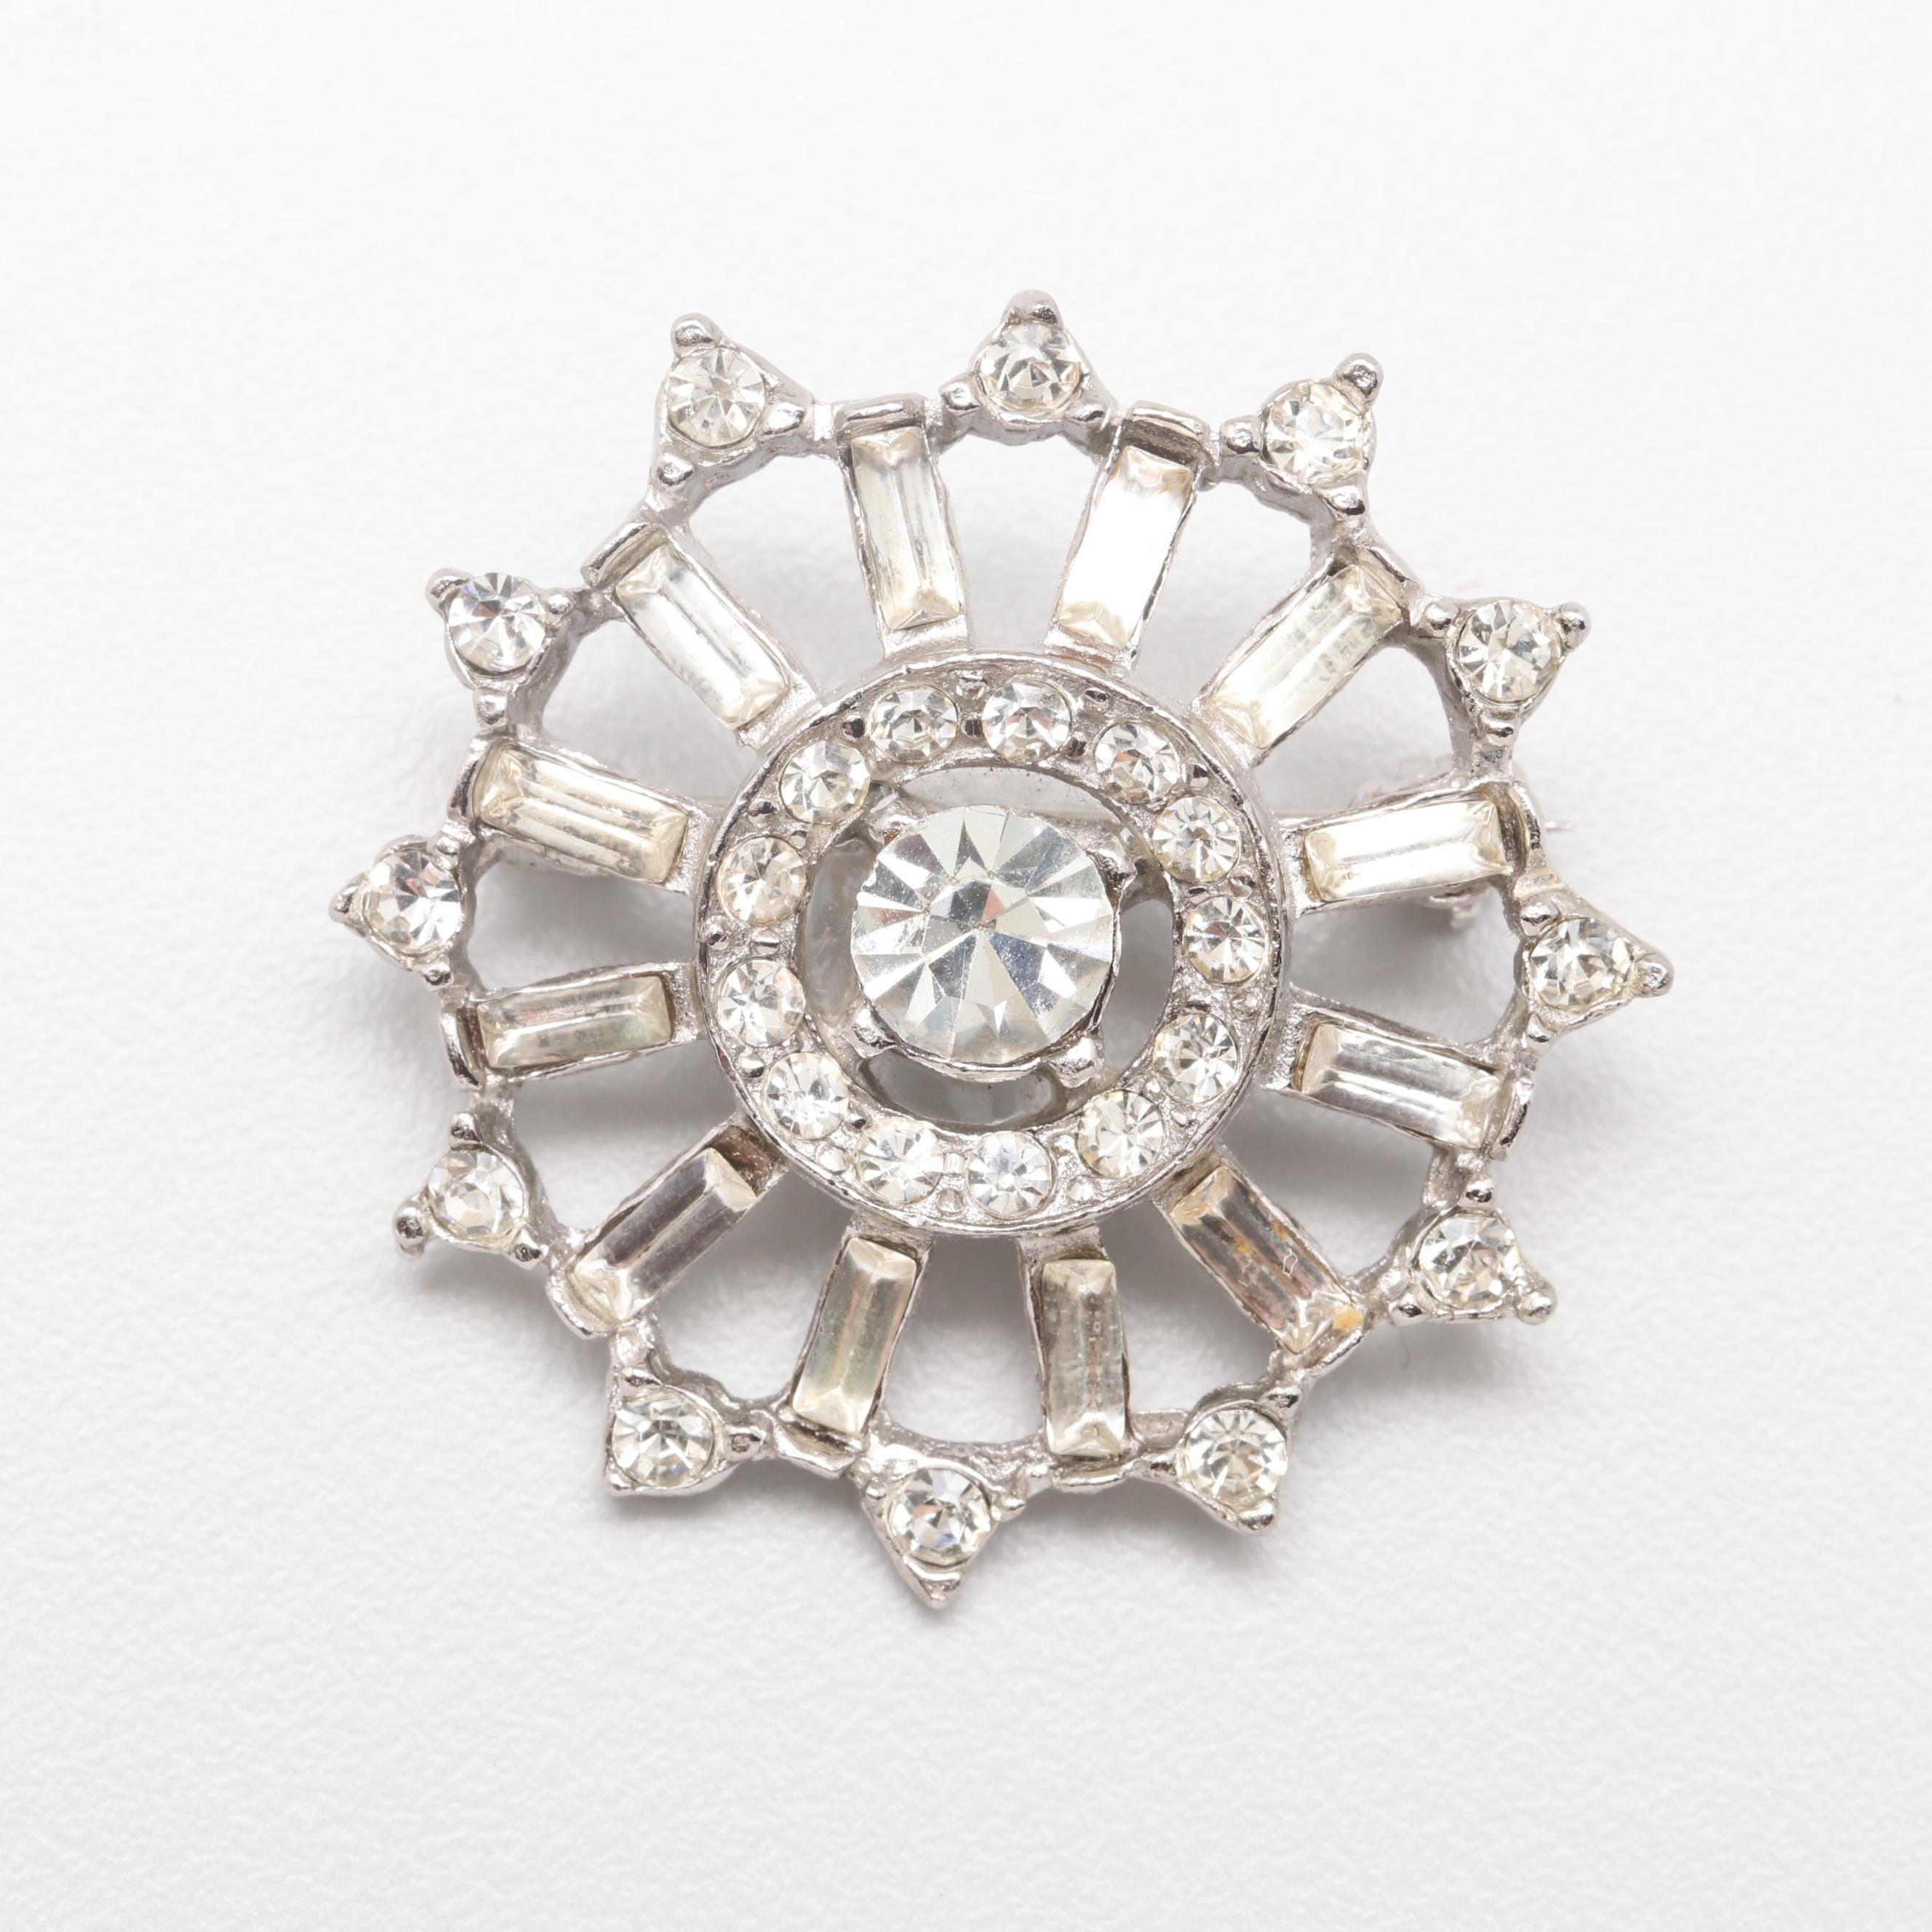 Silver Tone Glass Crystal Brooch